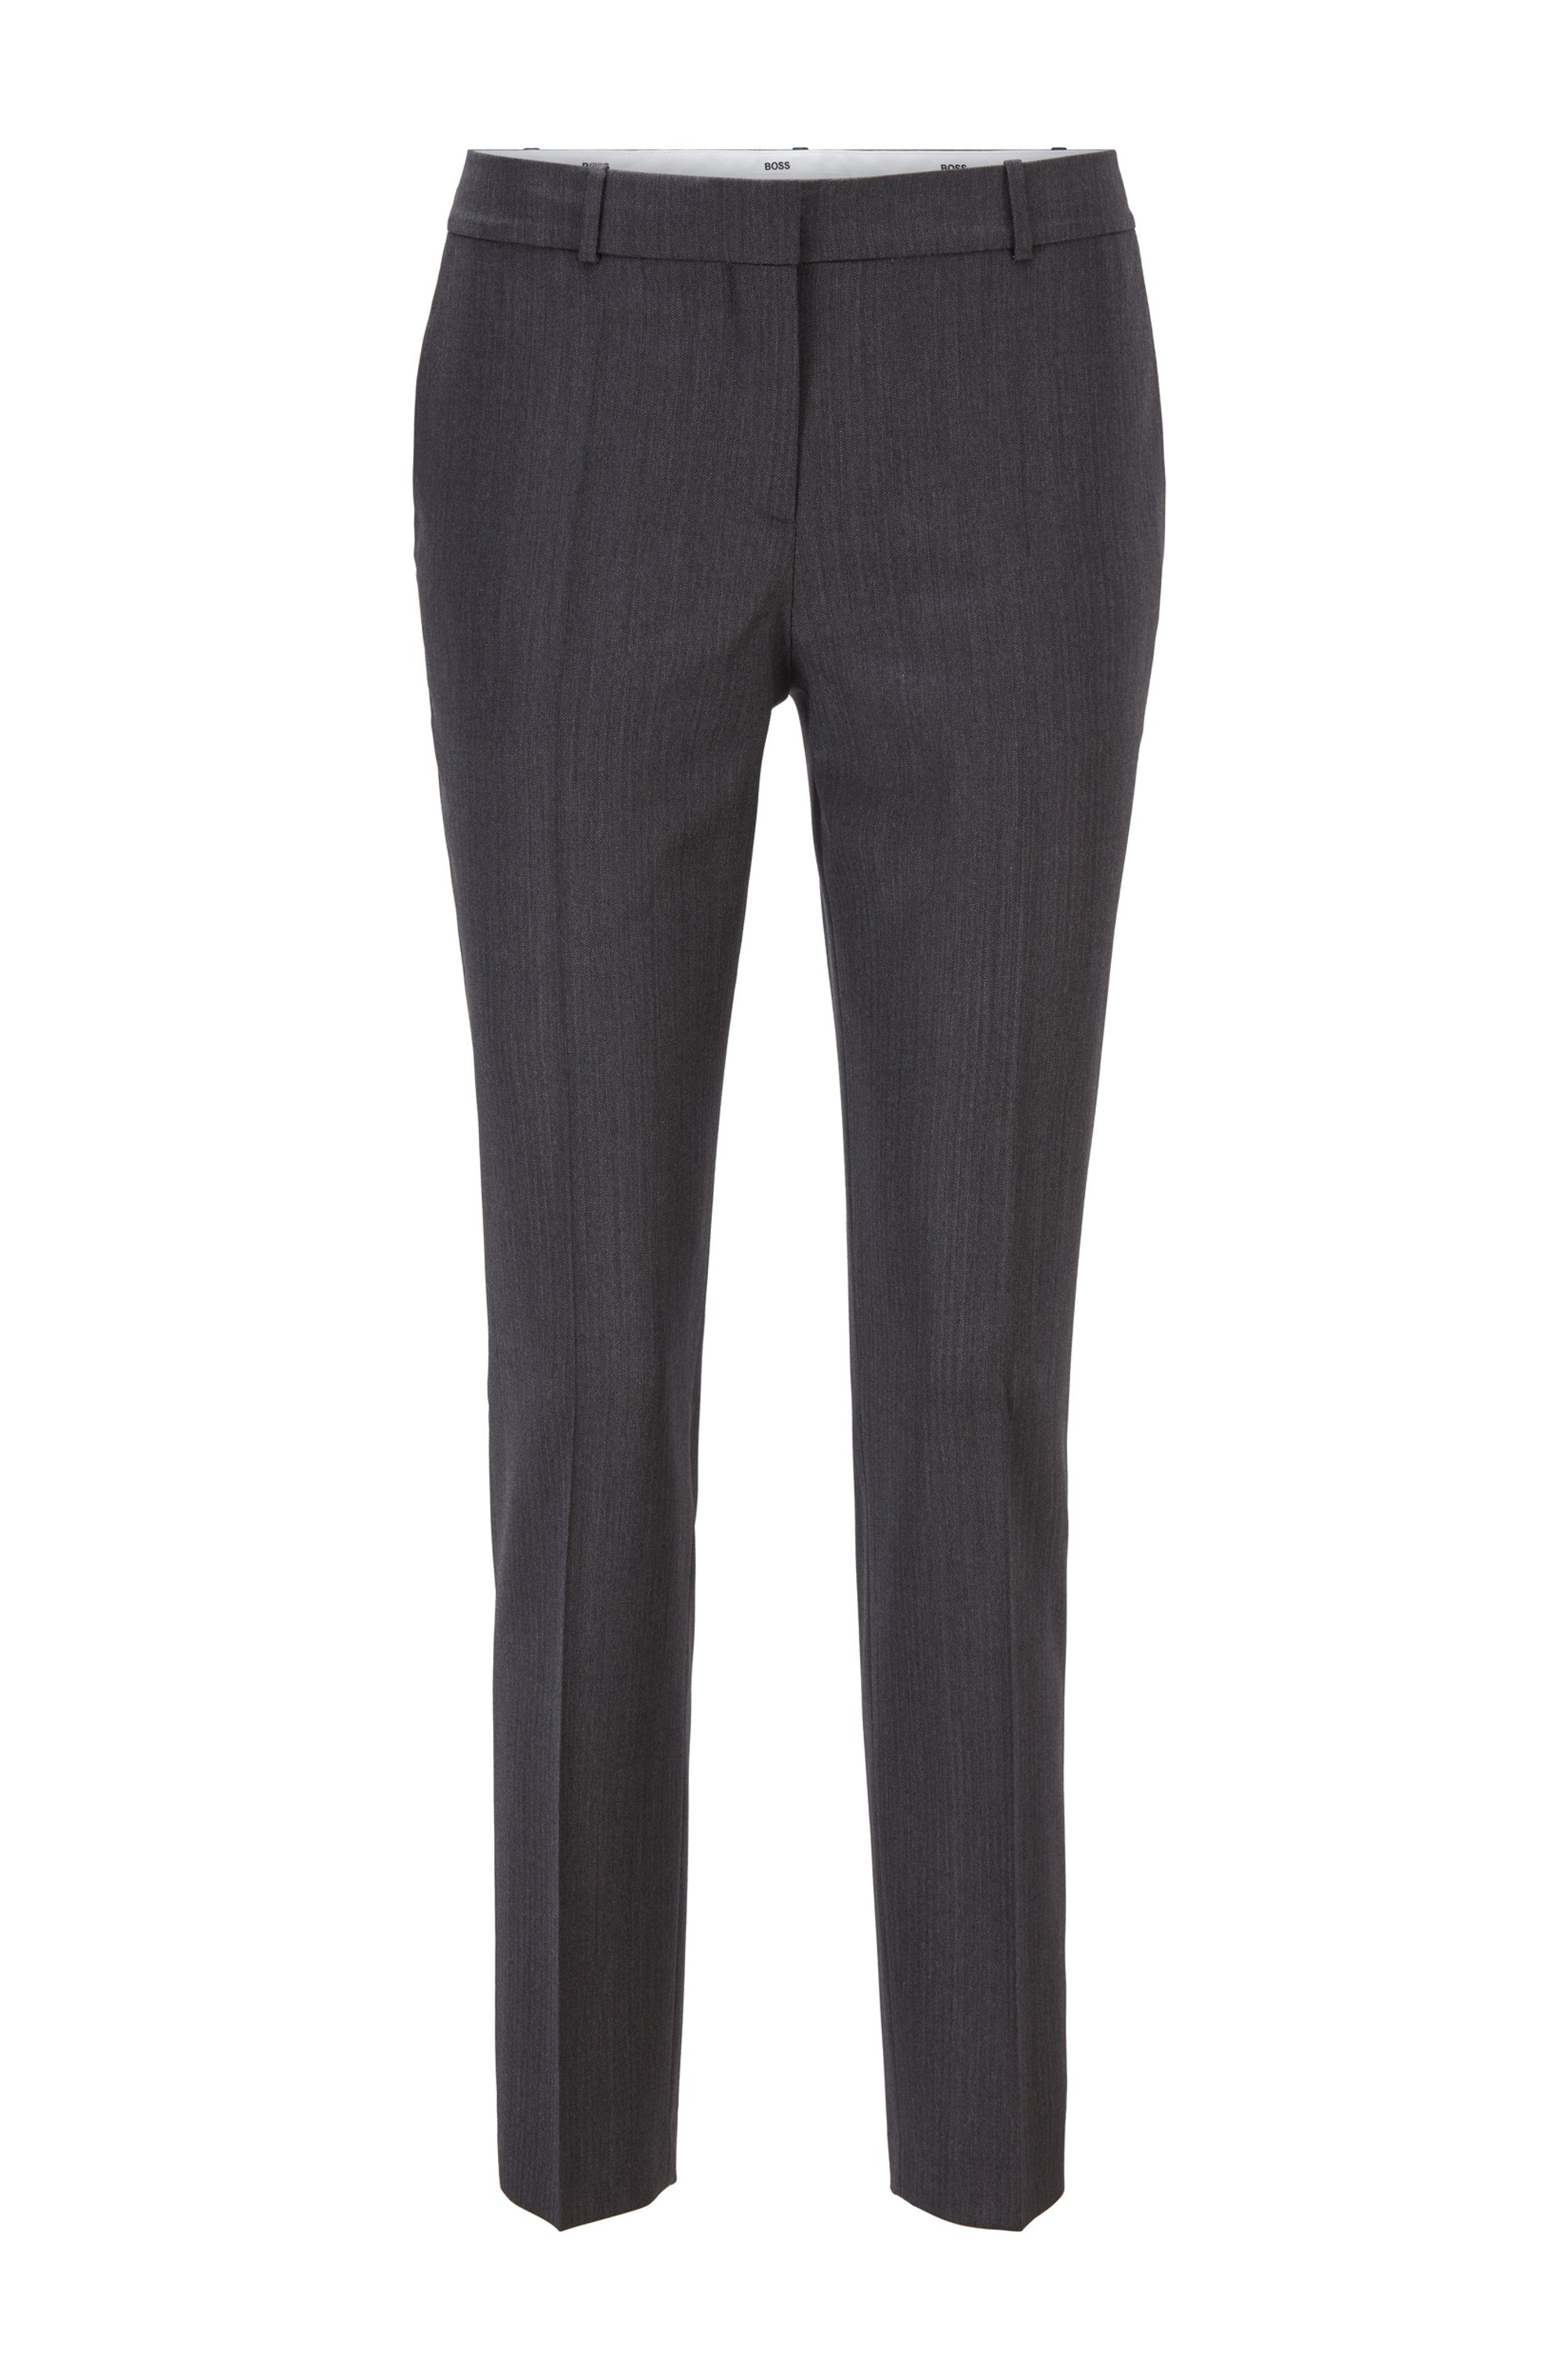 Regular-fit trousers in herringbone virgin wool, Patterned